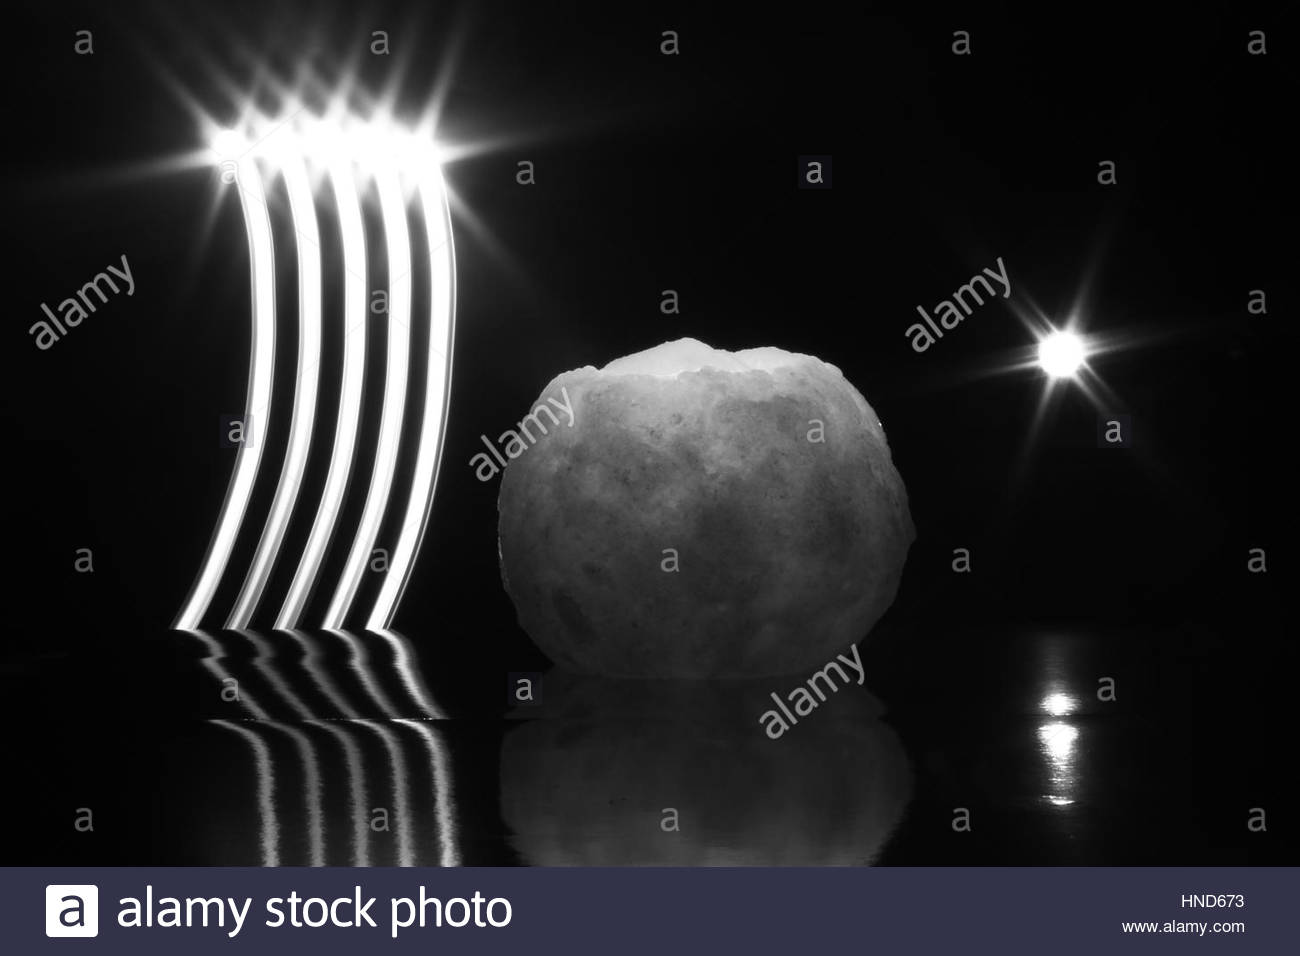 Candle Light Painting Candle Star And Light Painting Stock Photo 133670631 Alamy